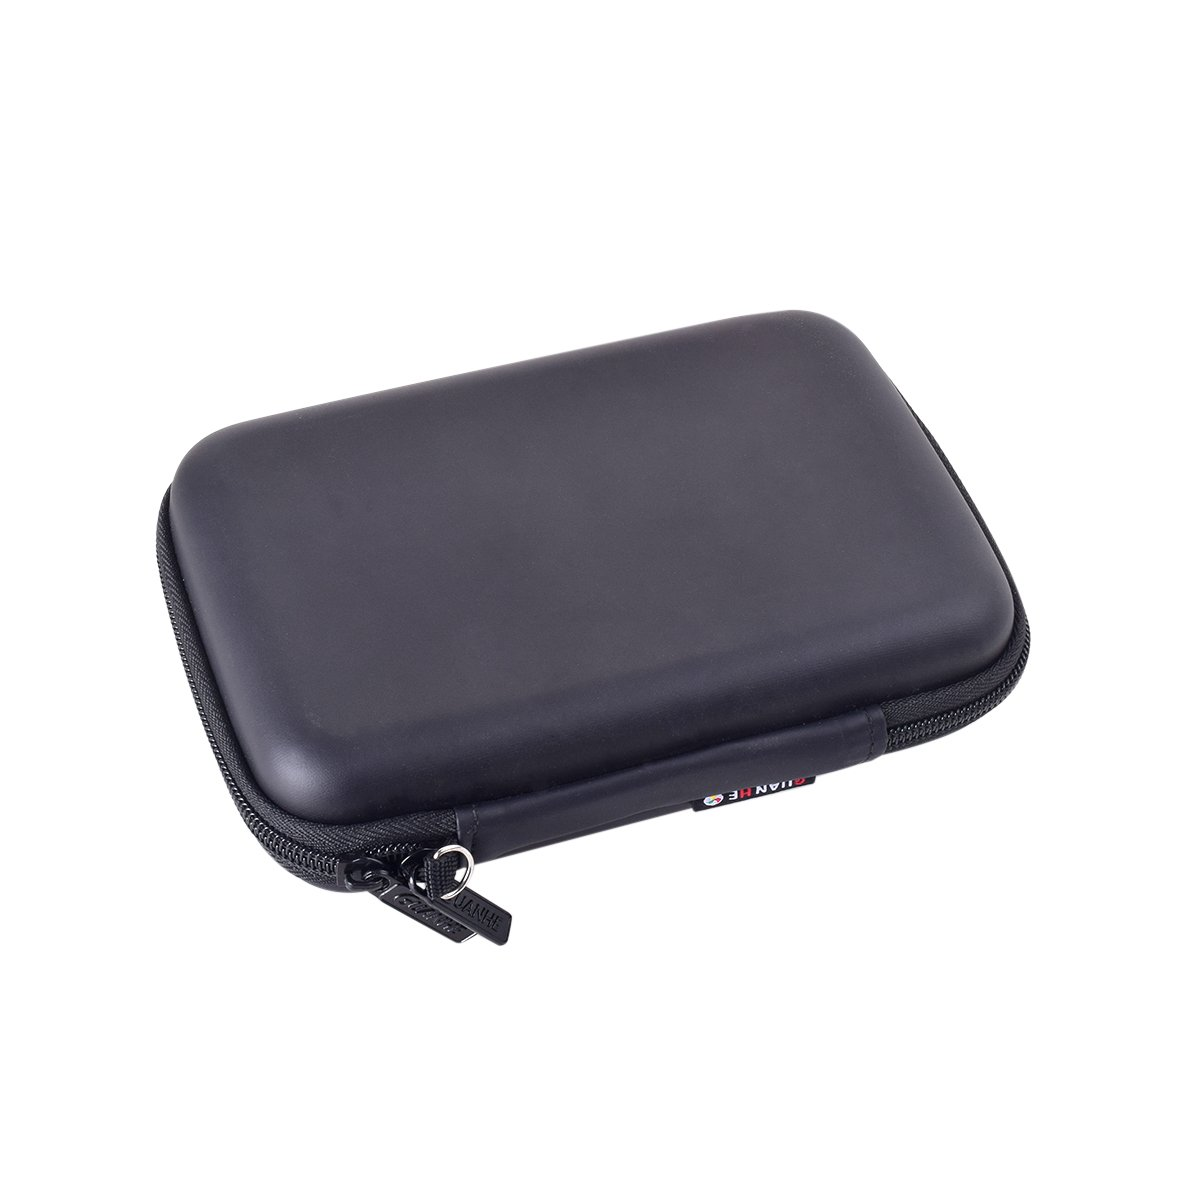 Strong Carrying Case for Mini Projector Portable Mobile Protection Multifunction by Cocar